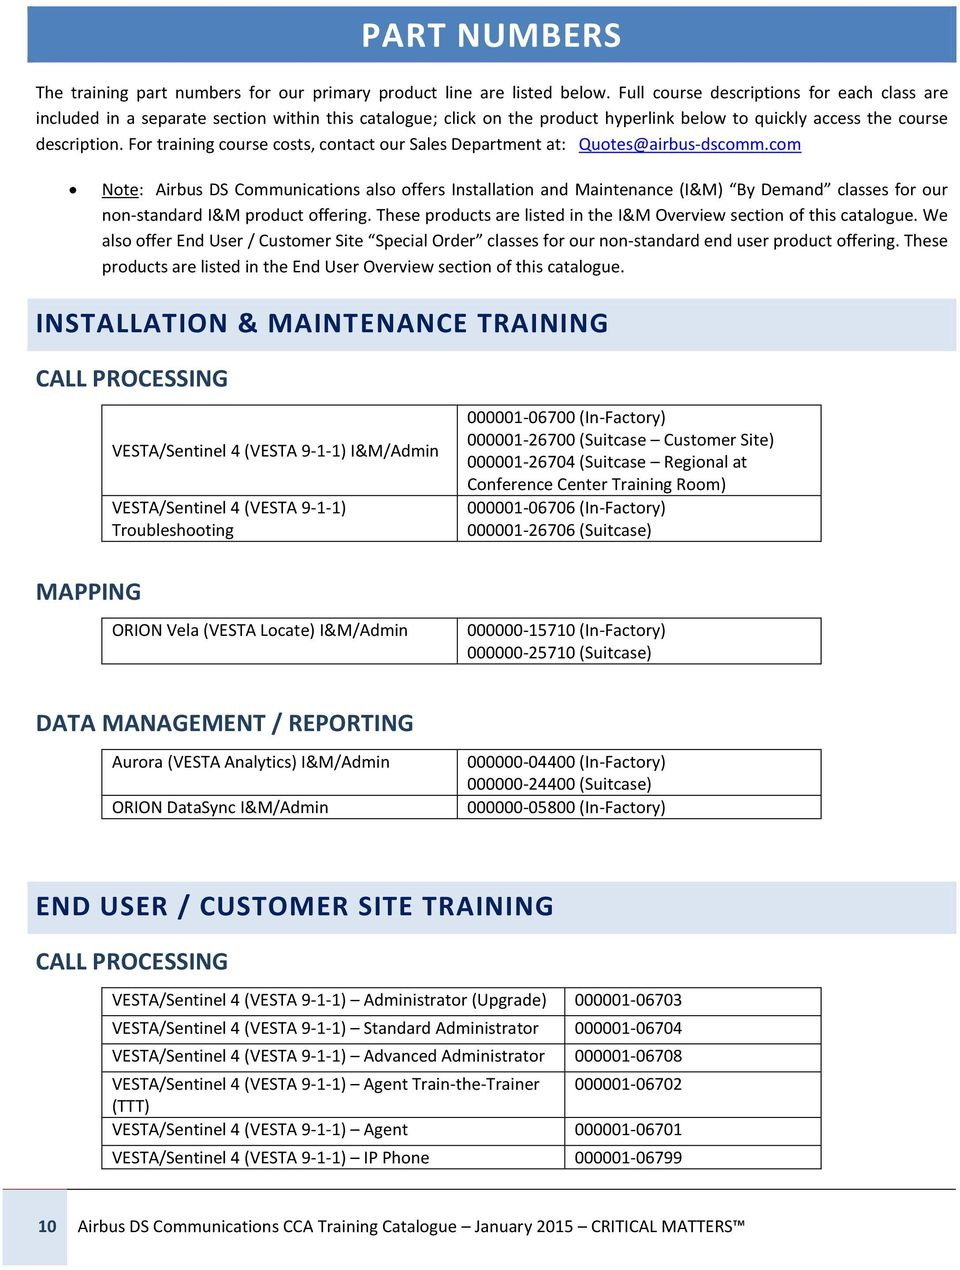 Fr training curse csts, cntact ur Sales Department at: Qutes@airbus-dscmm.